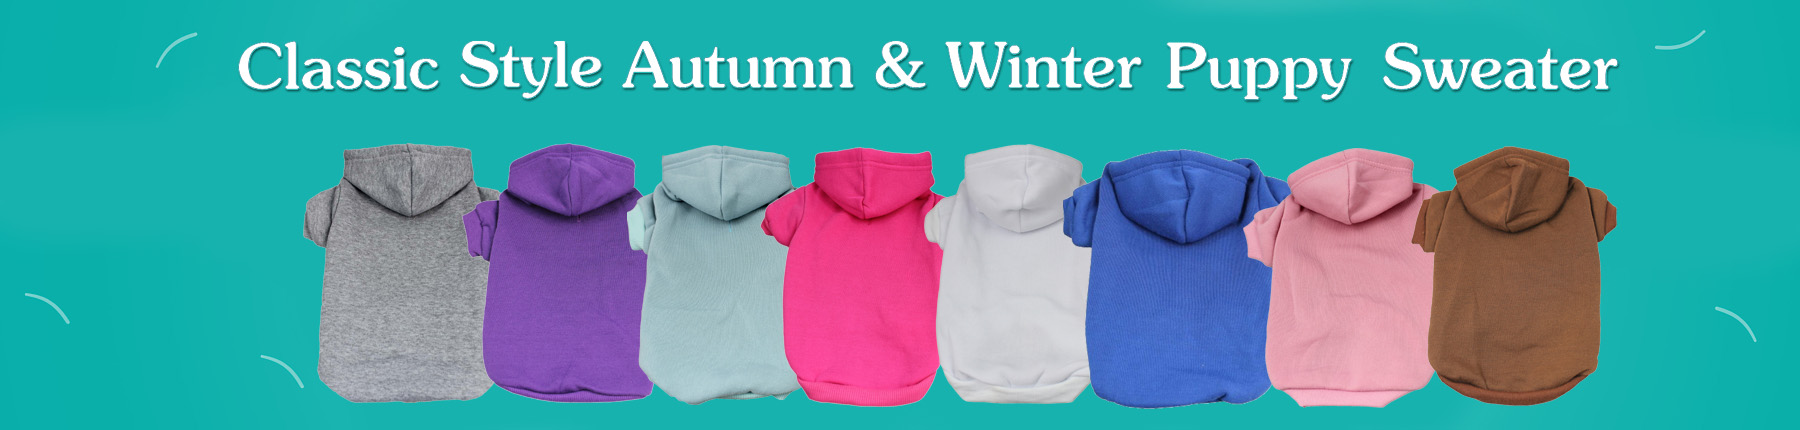 Classic Style Autumn & Winter Puppy Sweater